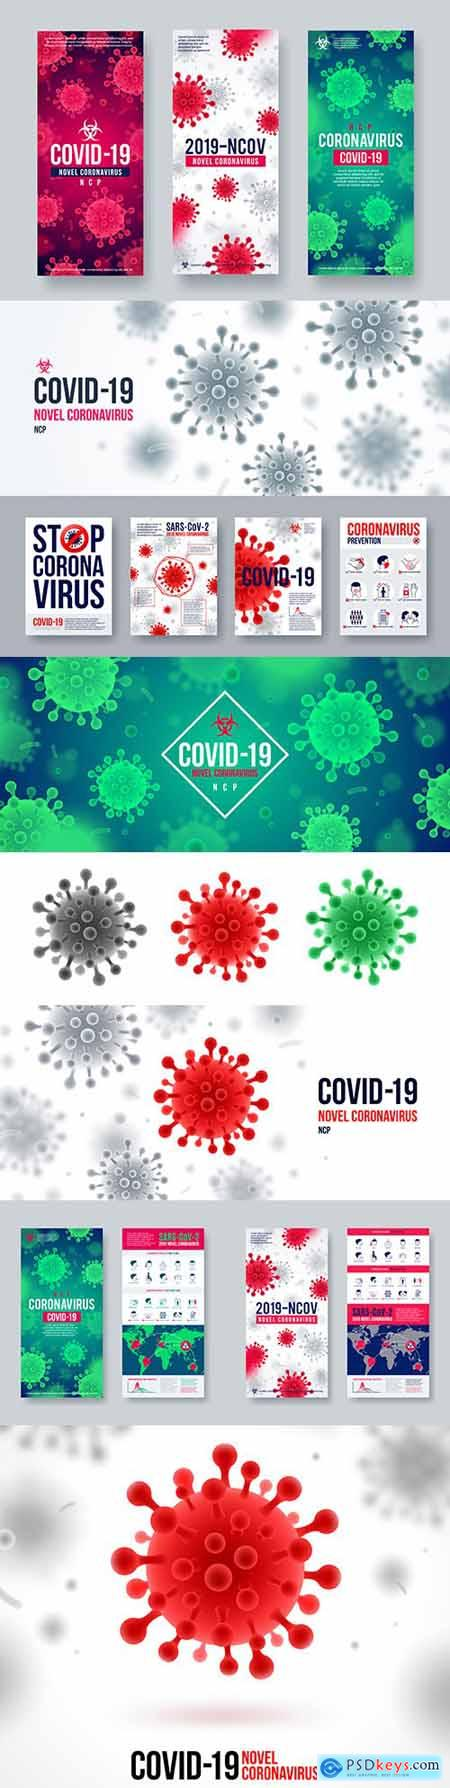 Coronavirus banner infographic elements and background with virus